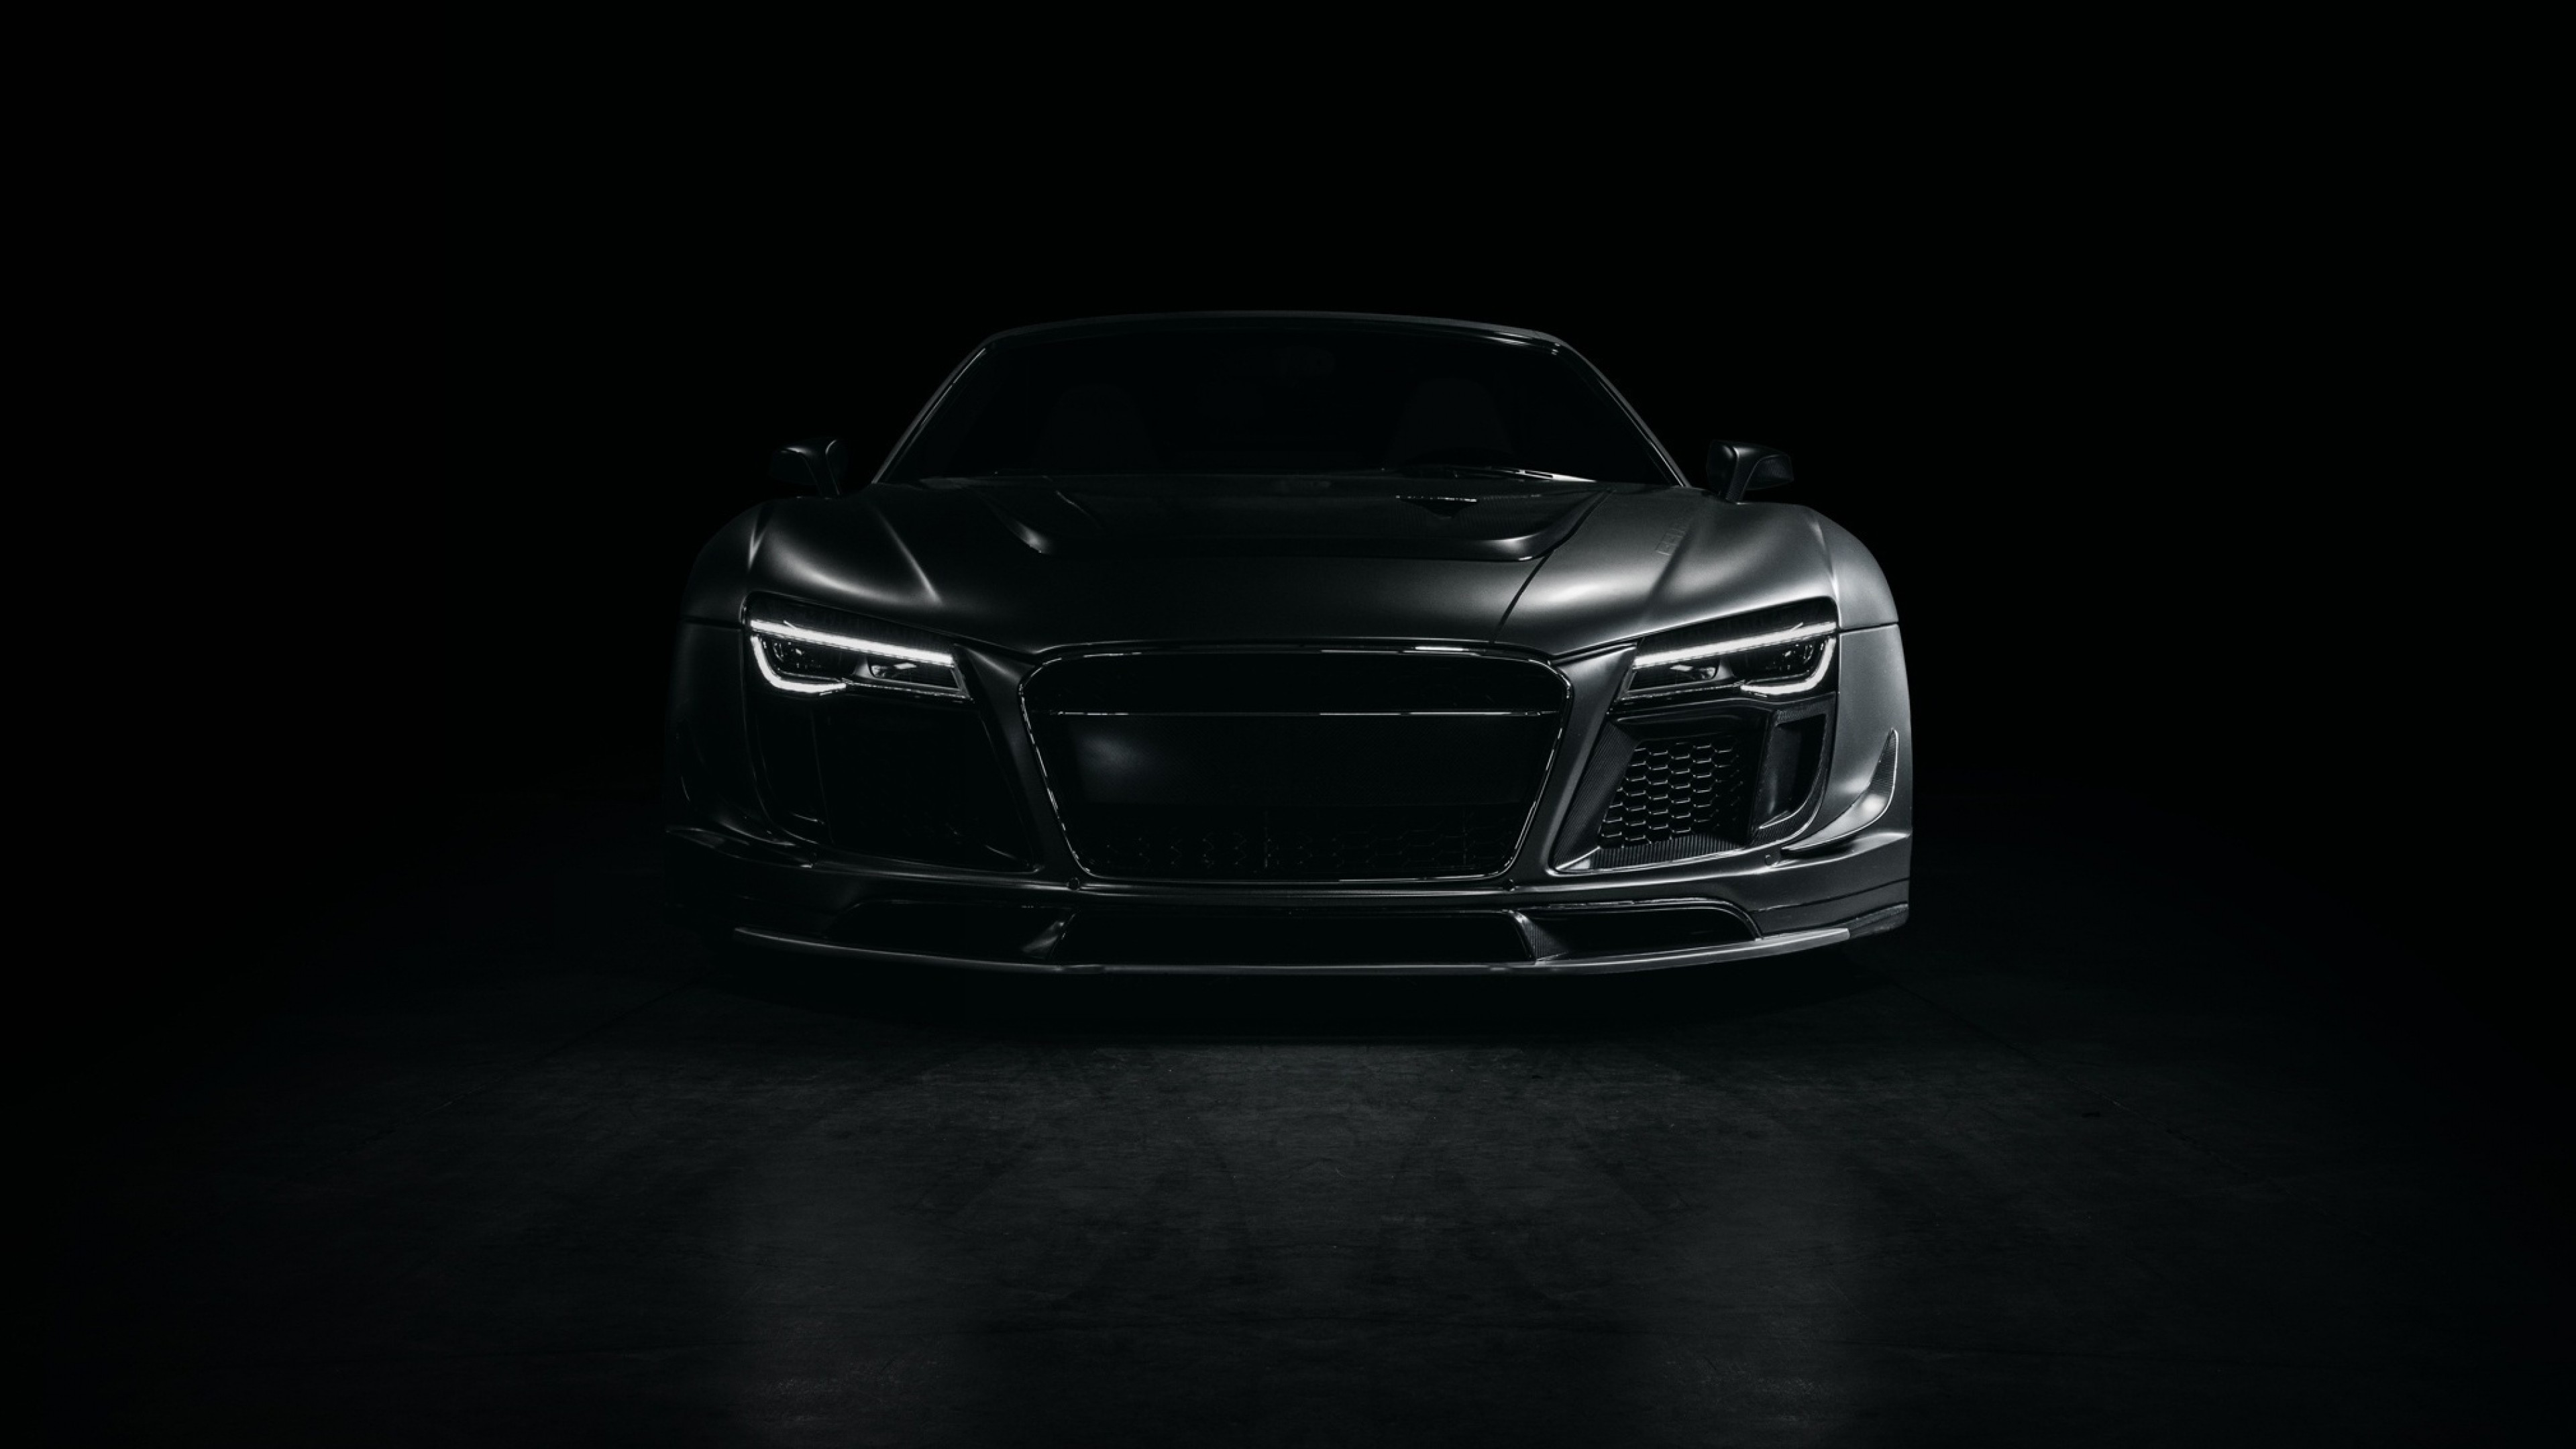 3840x2160 Preview Wallpaper Audi, R8, Sports Car, Tuning, Front View, Black  3840x2160